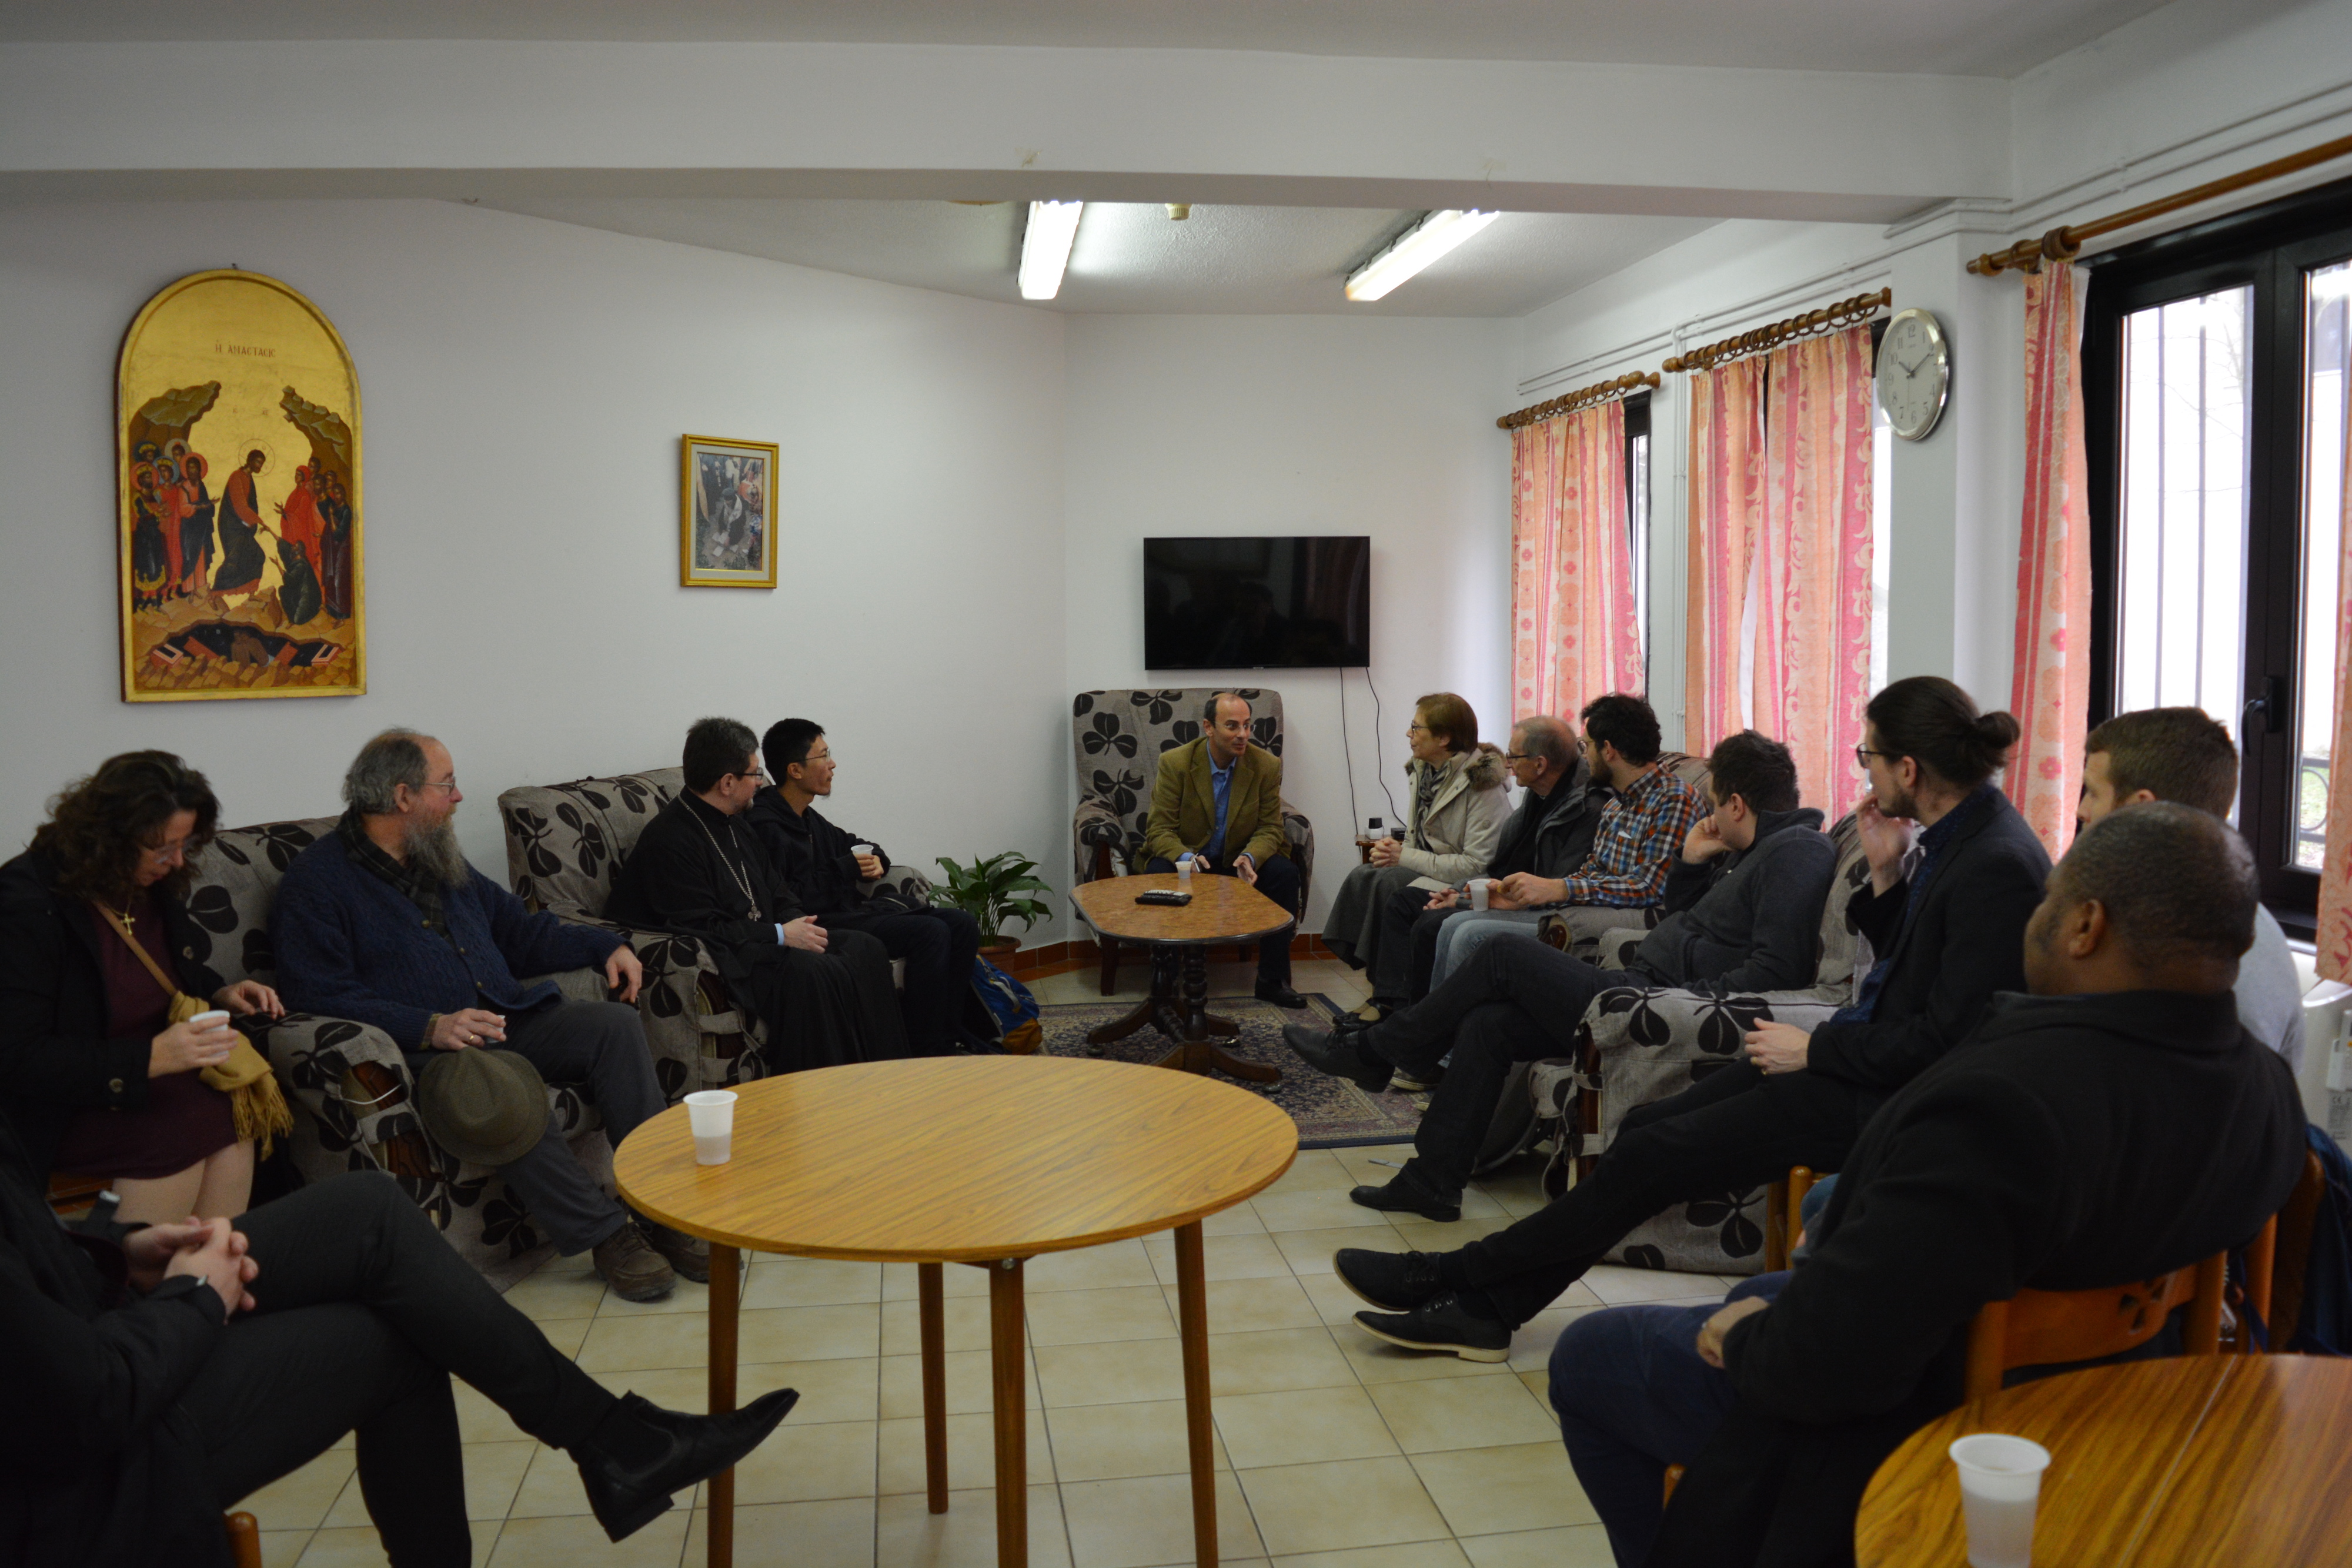 Reception in the Theological Faculty of the Logos University by Prof. Georgios Gaitanos